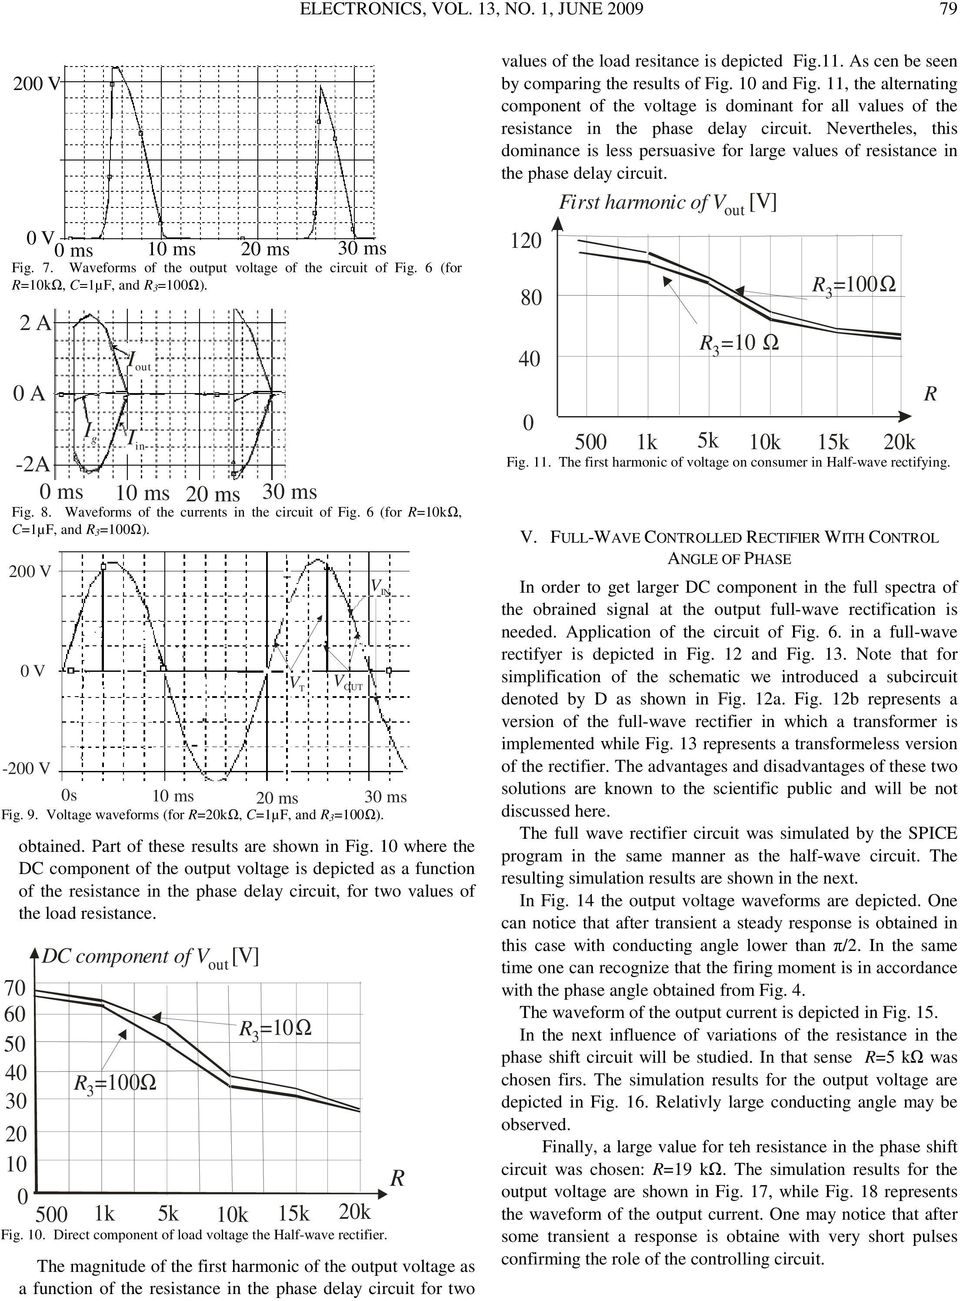 A Thyristor Full Wave Rectifier With Control Of The Conducting Circuit Averaging Filter Pictures Part These Results Are Shown In Ig 1 Where C Component